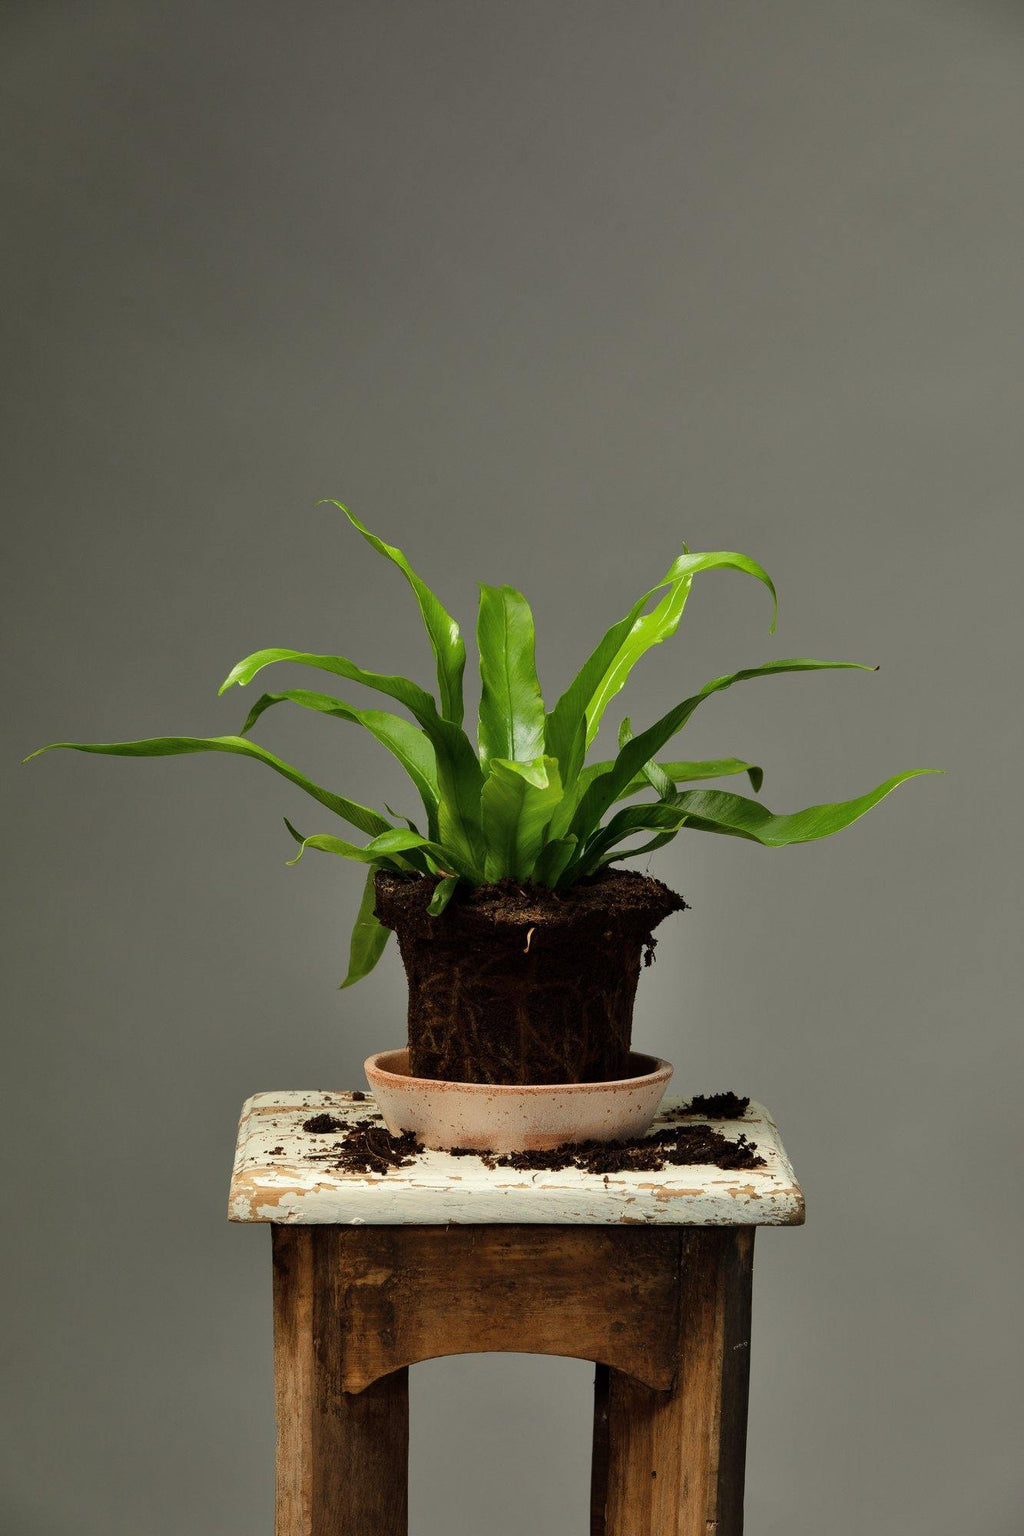 The Asplenium Nidus, also know as the Bird's Nest Fern, which is a houseplant that originates from tropical Asia.